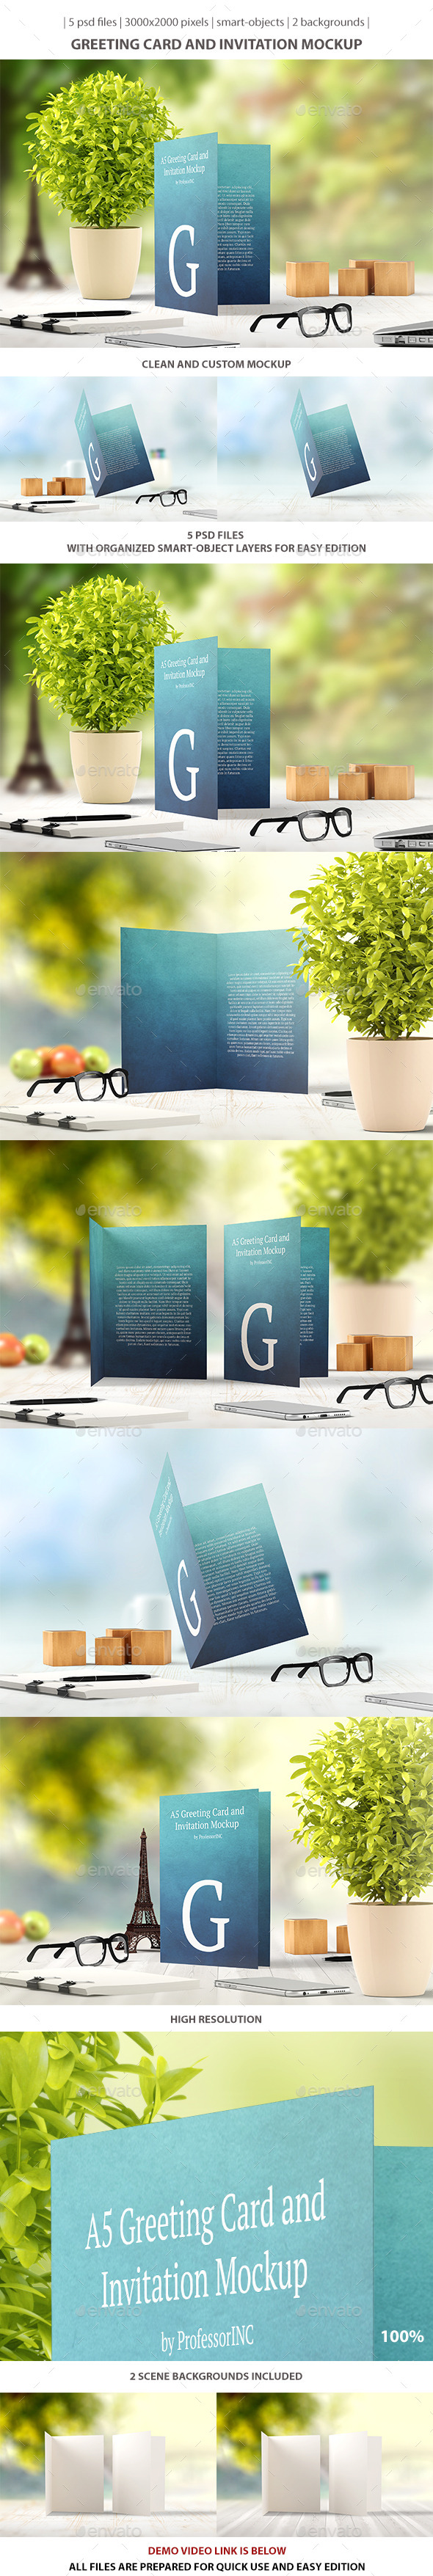 GraphicRiver Greeting Card and Invitation Mockup 9455408